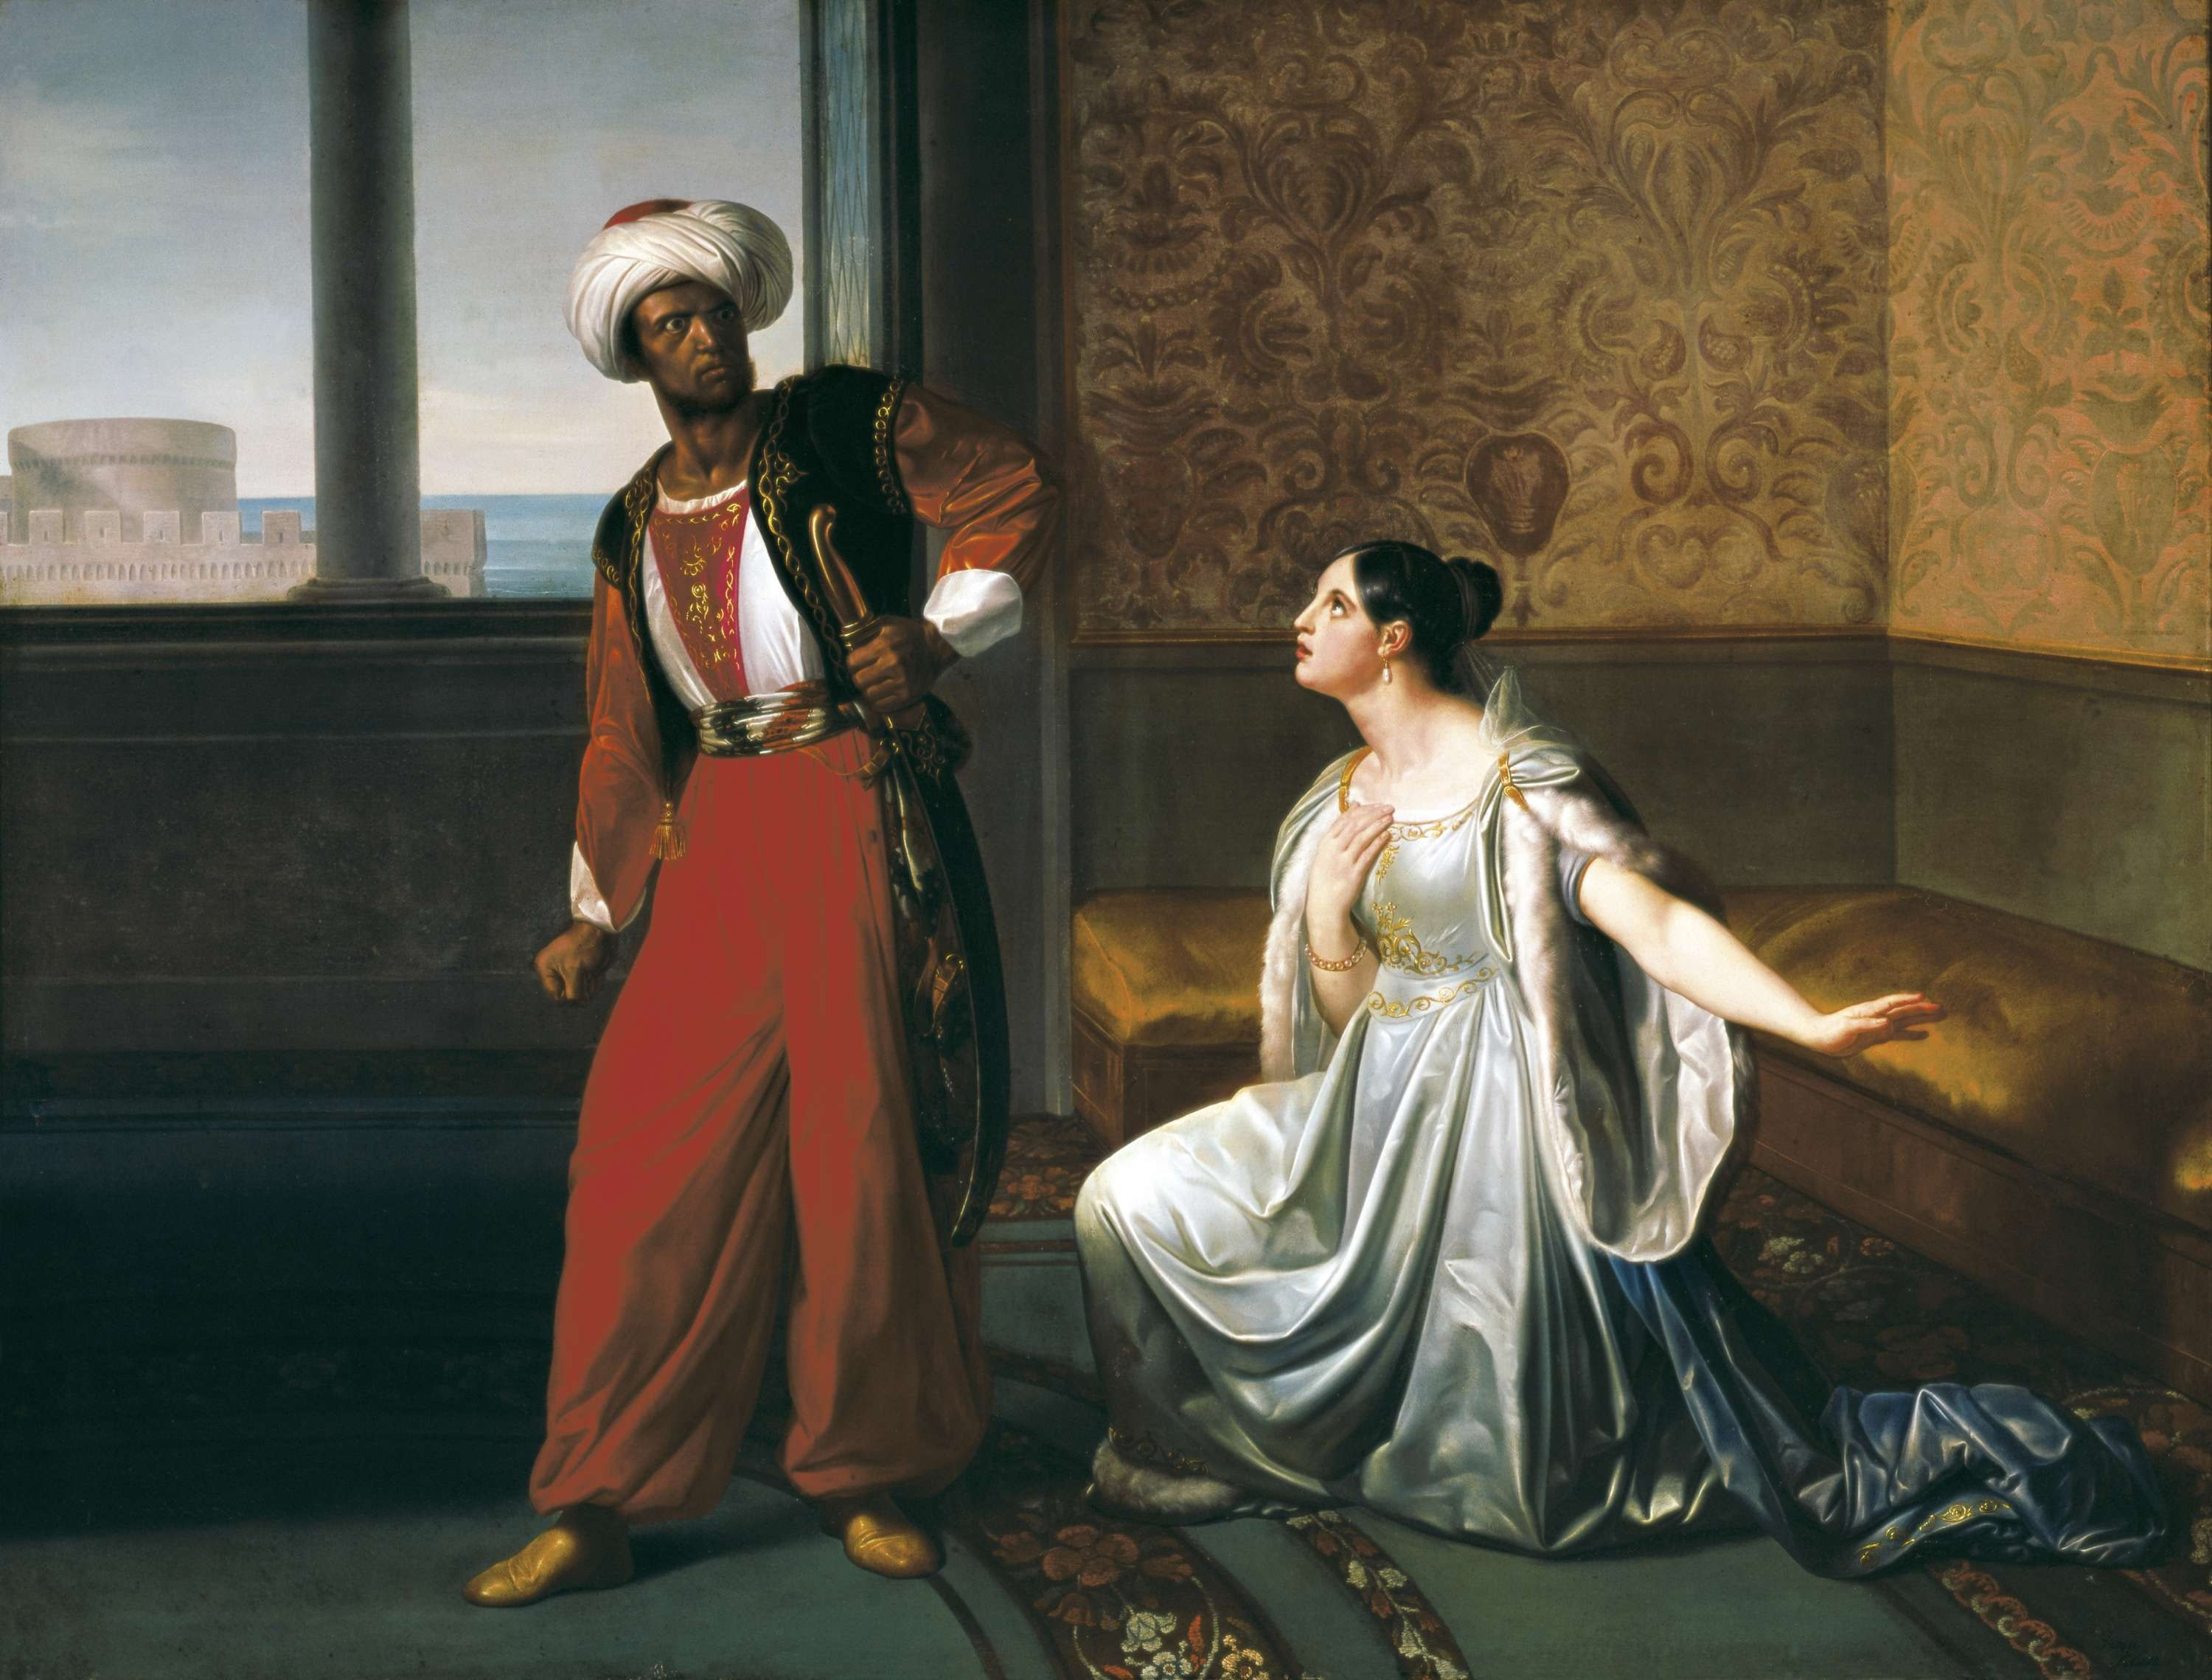 desdemona and the norms of sexual morality in shakespeares othello Cinthio drew a moral shakespeare's most striking departure from cinthio is the manner of his heroine's death in shakespeare, othello suffocates desdemona.